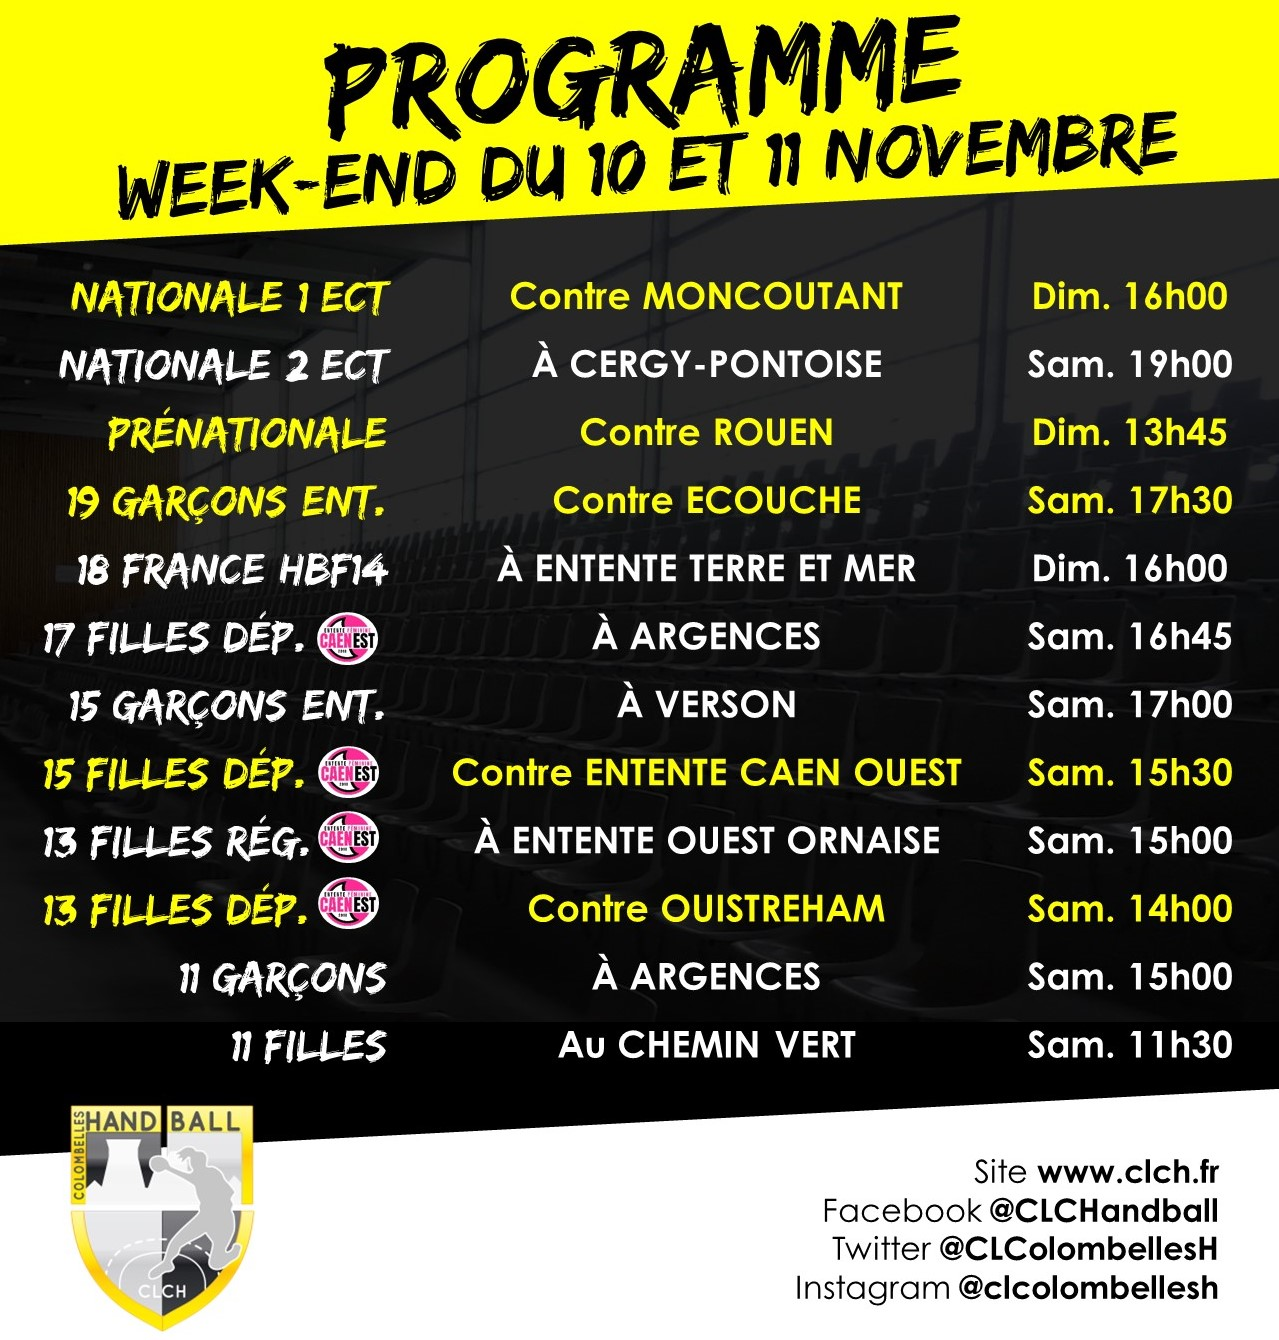 PROG WEEKEND 10-11 NOV